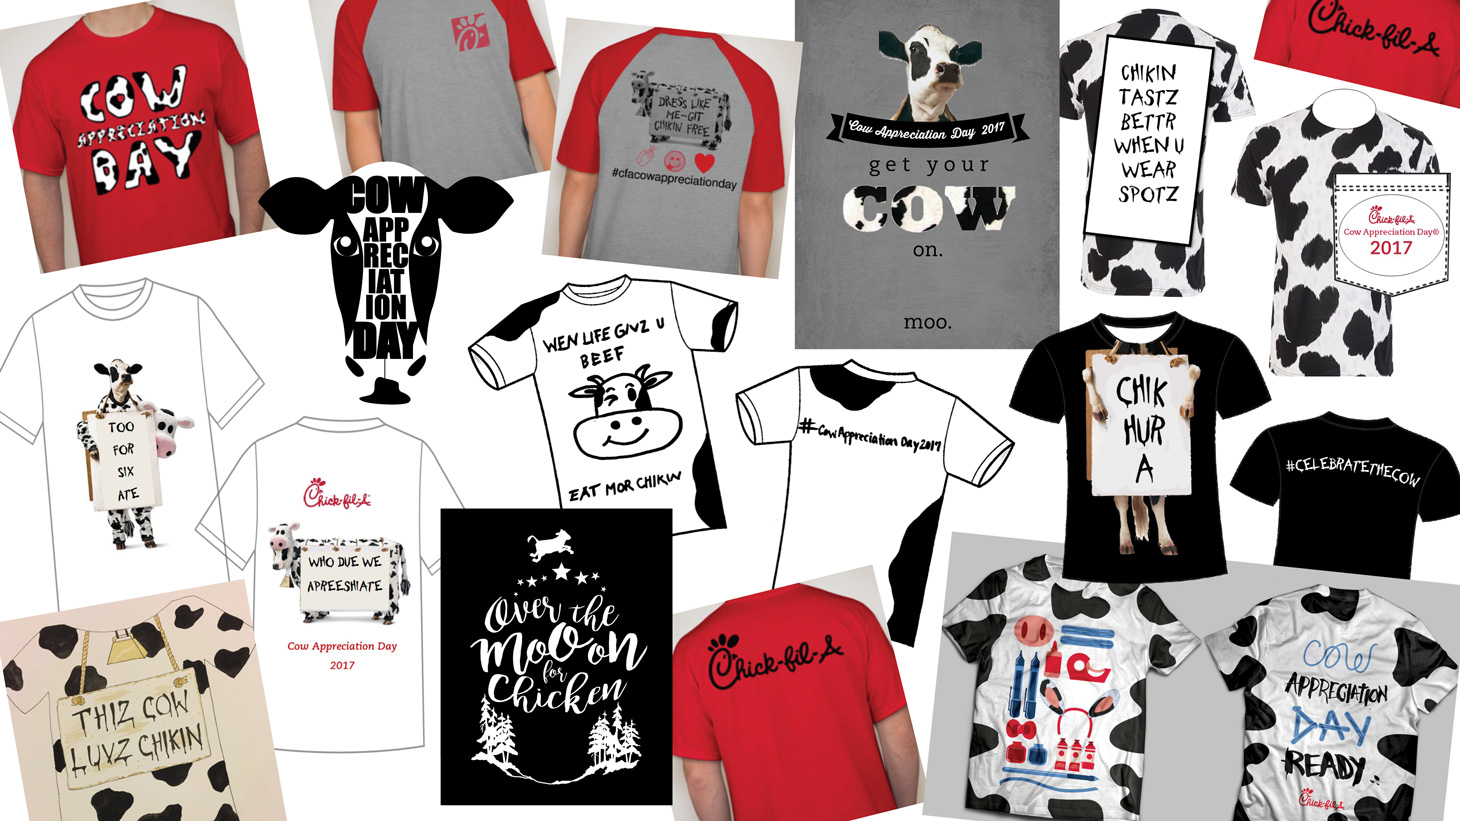 picture regarding Chick Fil a Printable Cow Costume referred to as The best Cow Appreciation Working day 2017 contest champion